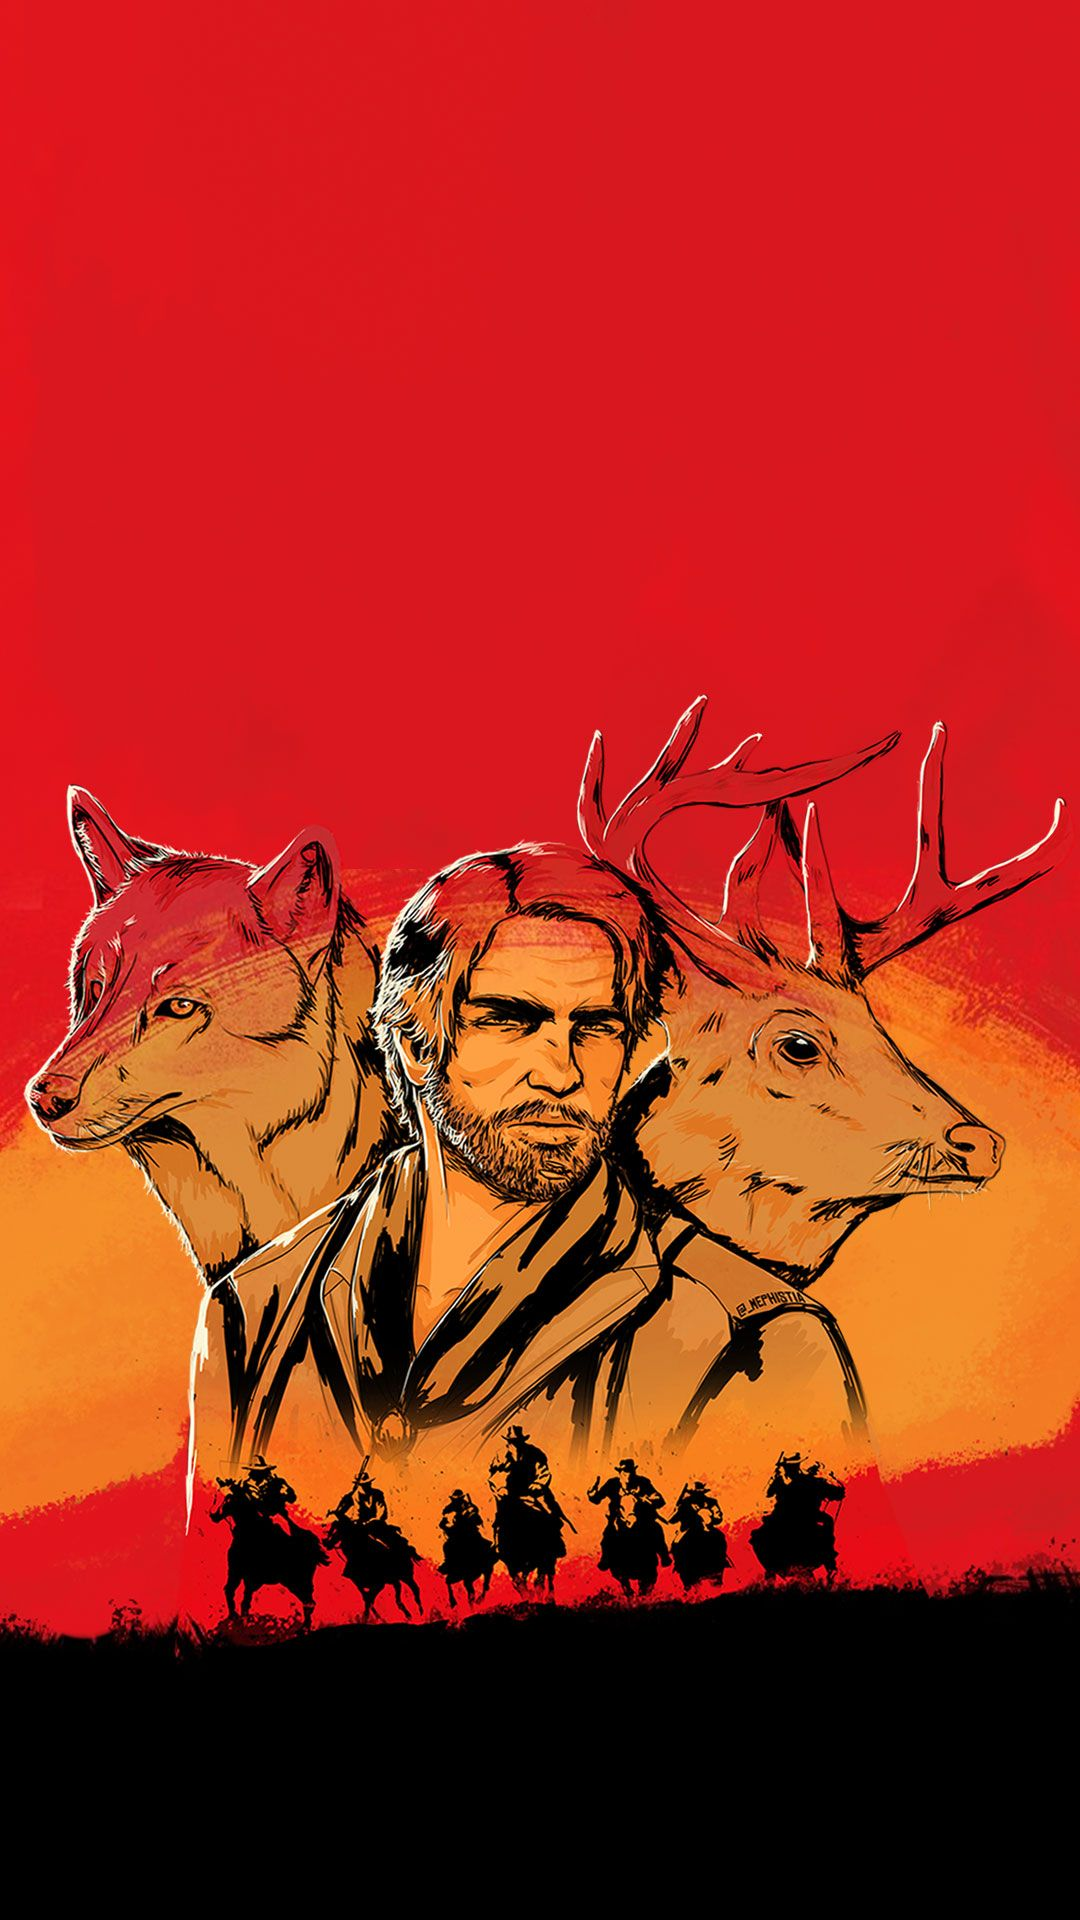 Mephistia Comms Closed On Twitter Red Dead Redemption Artwork Red Dead Redemption Art Red Dead Redemption Ii